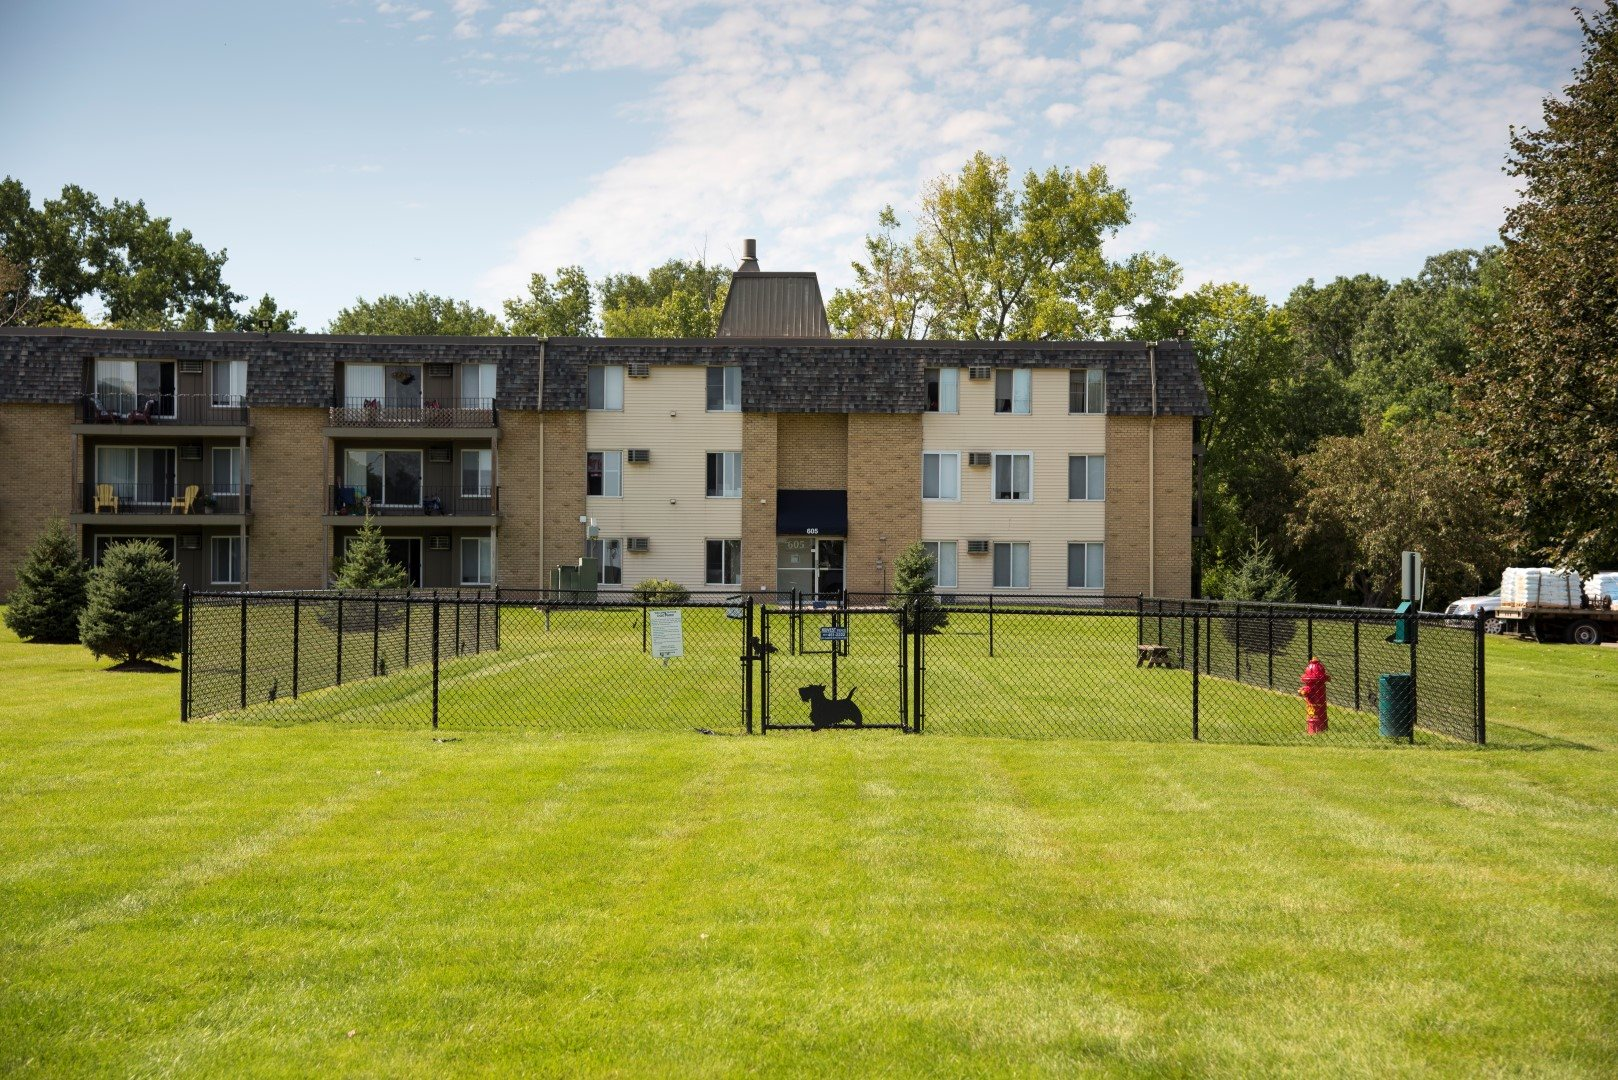 Dog Park at Shorview Grand cheap 3 bedroom apartments in Shoreview MN